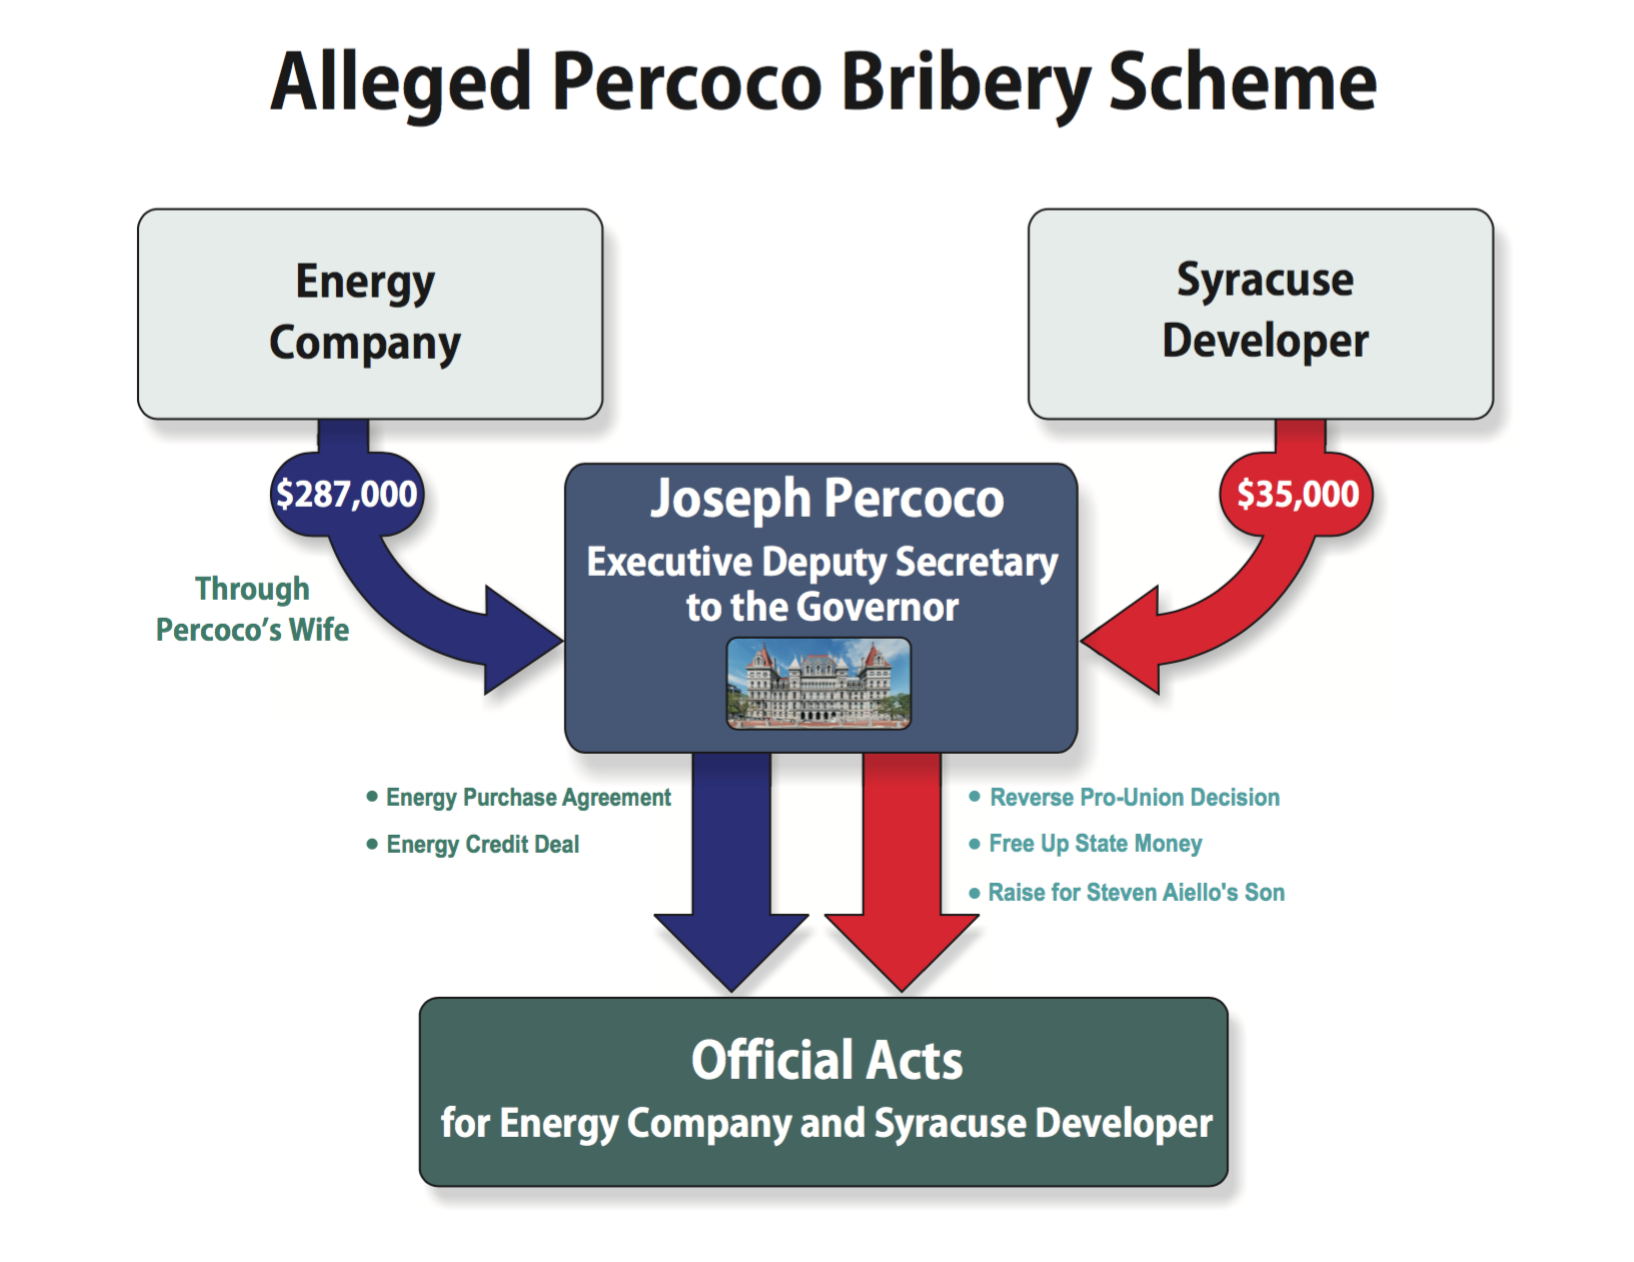 A flow chart prepared by Federal prosecutors that described the nature of allegations in one of the schemes charged against some of the co-Defendants, including former top Cuomo aide  Joseph Percoco . Source : U.S. Attorney's Office for the Southern District of New York